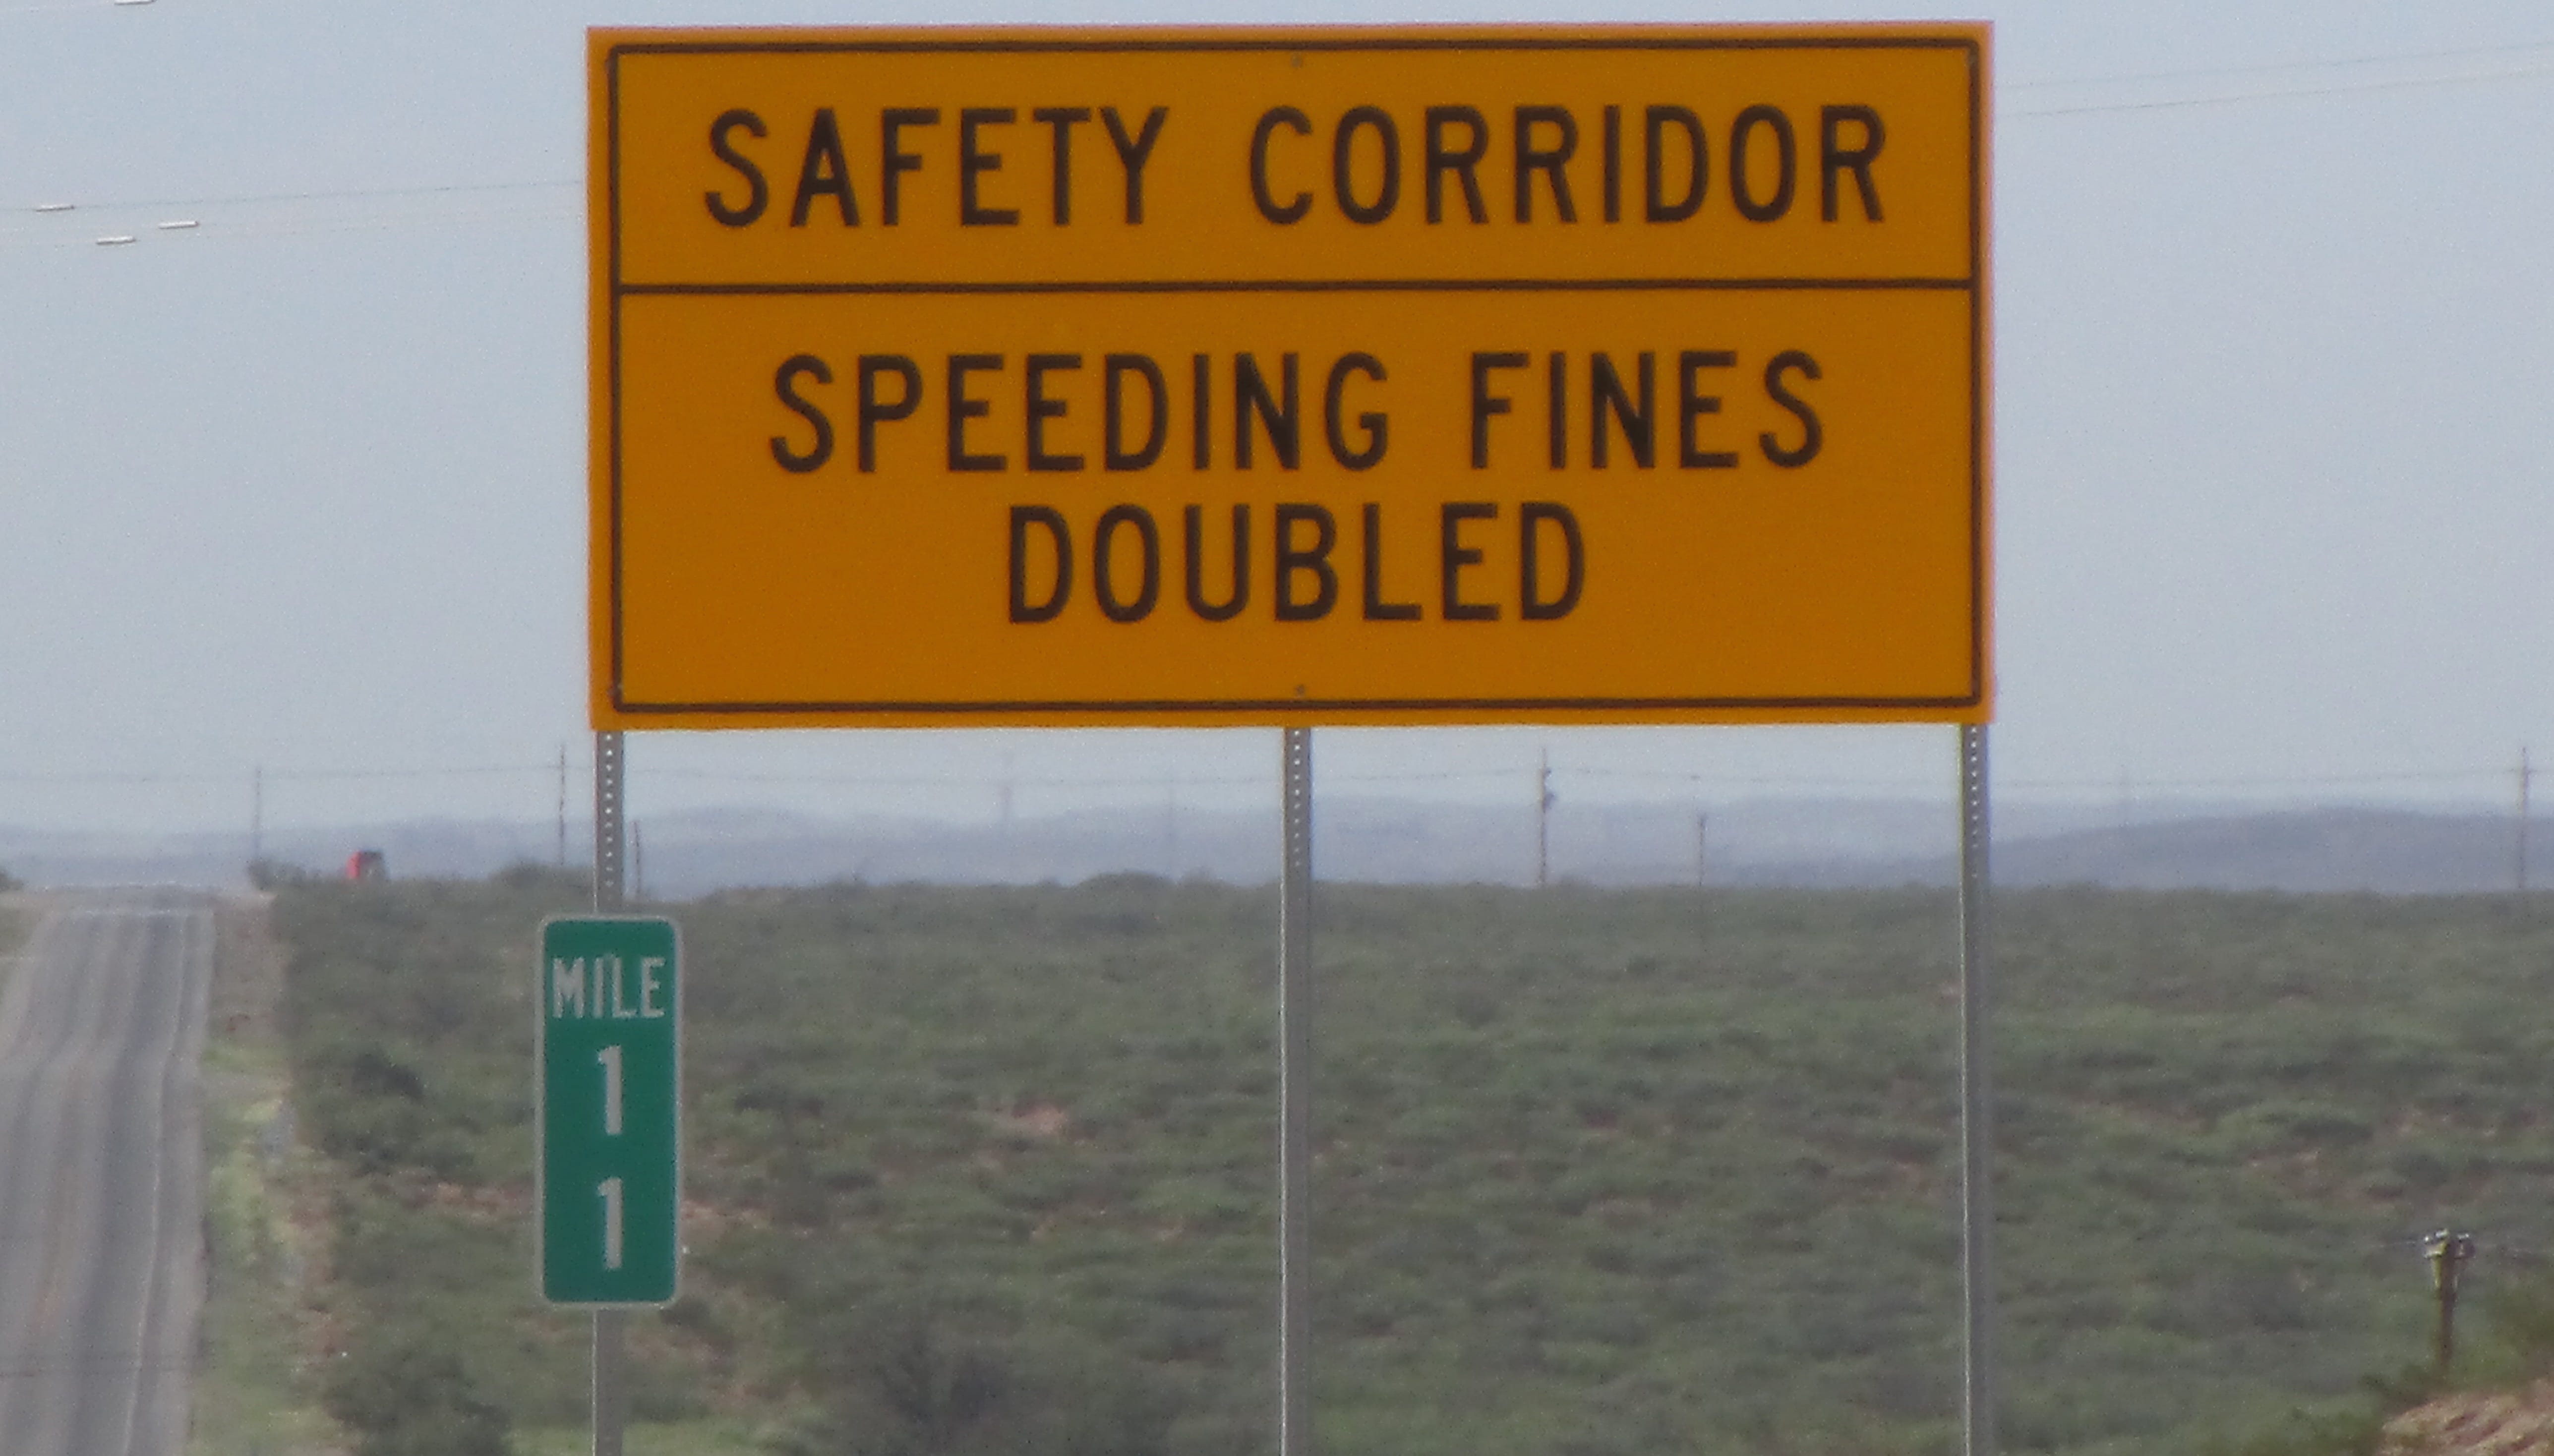 In 2018 a safety corridor was established along the 20-mile stretch of Highway 285 to correct dangerous driving conditions that resulted in numerous accidents and fatalities.